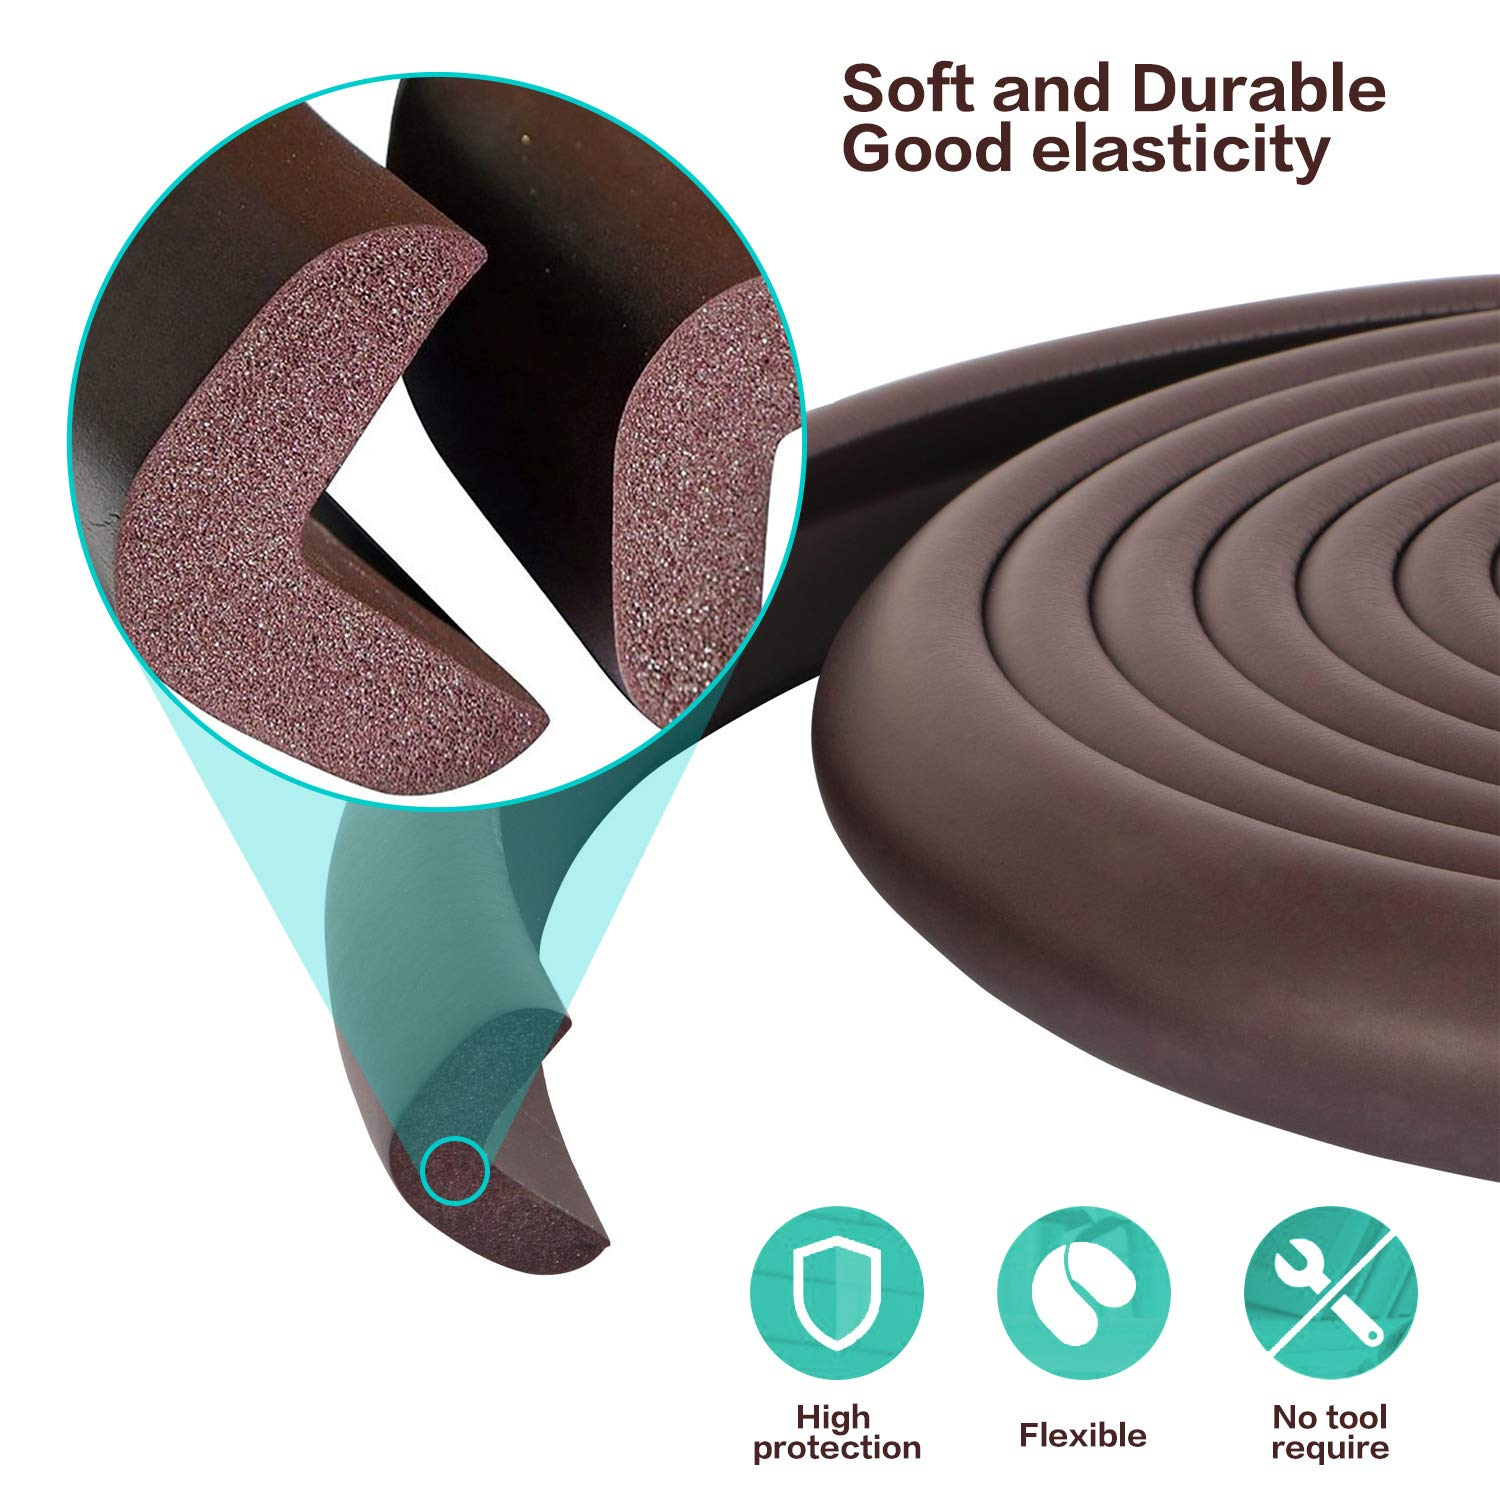 Baby Proofing Edge and Corner Guards,NBR Rubber Set for Safe Edge & Corner Guards Cushion,23Ft [19.68Ft Edge + 8 Corner],Child Safety Furniture Bumper(Brown) by COCOLi (Image #3)